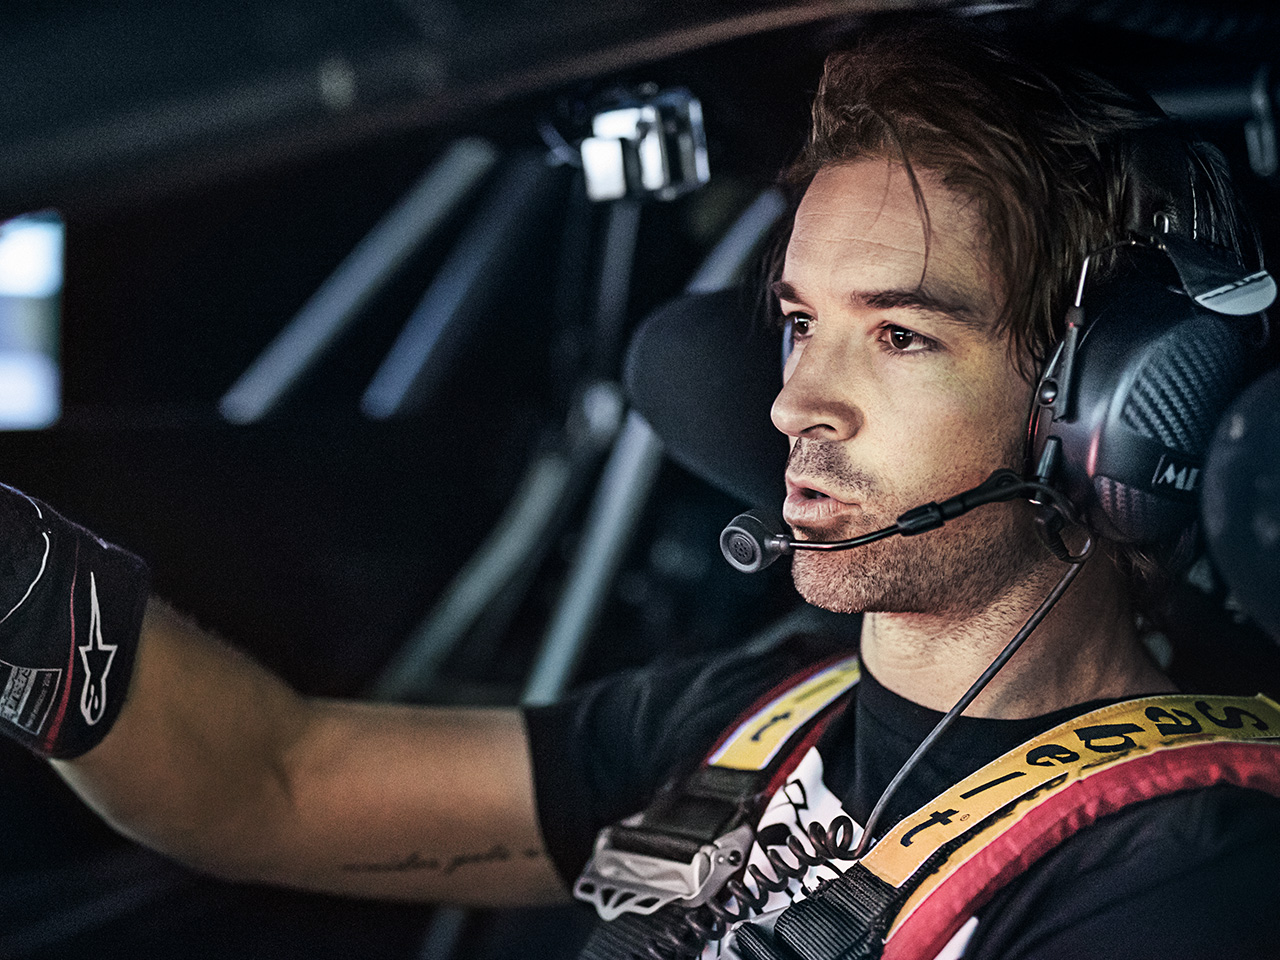 Porsche Baseball star C. J. Wilson. Le Mans in simulator training.